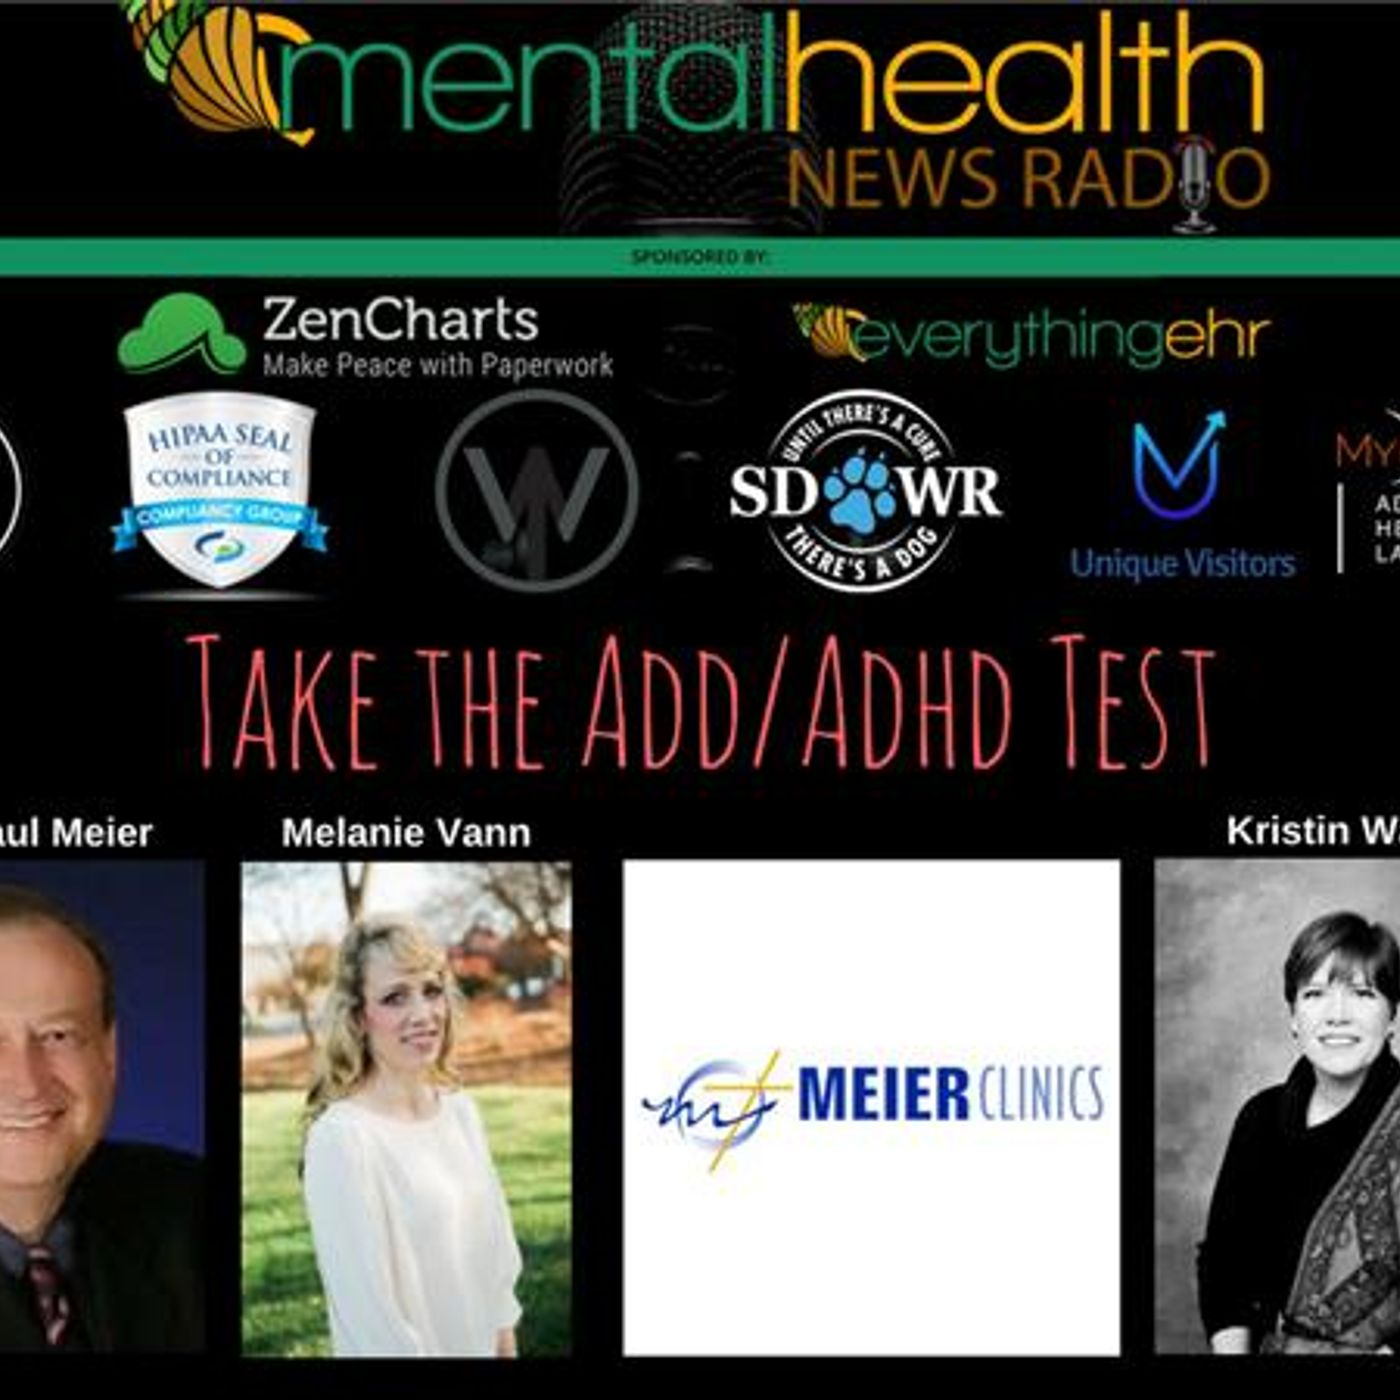 Mental Health News Radio - Round Table Discussions with Dr. Paul Meier: Take the ADD/ADHD Test!